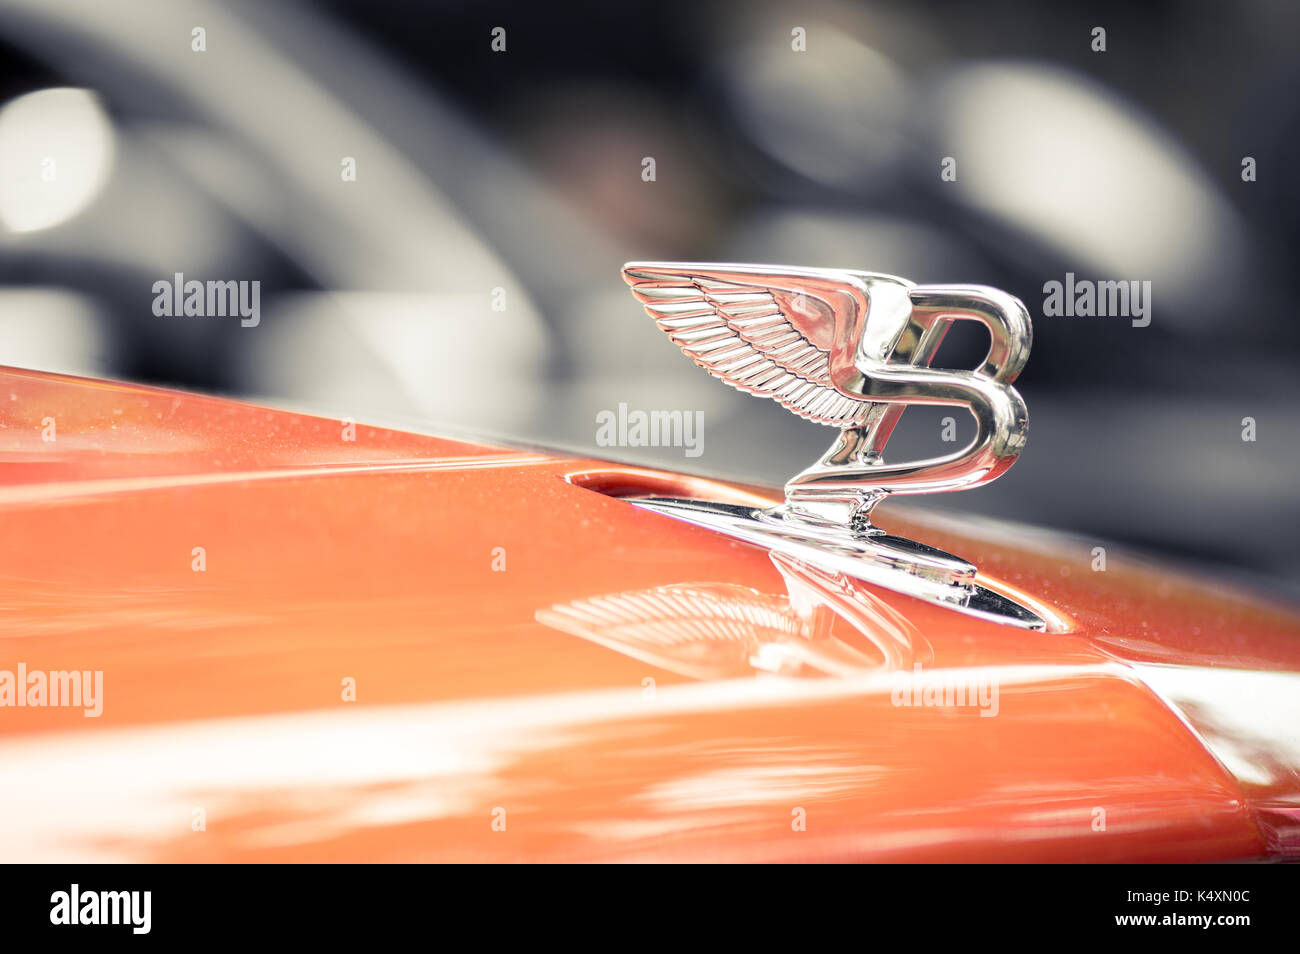 WROCLAW, POLAND -  AUGUST 19th, 2017: Hood ornament on a vintage Bentley car. Bentley Motors Limited is a British manufacturer and marketer of luxury  - Stock Image